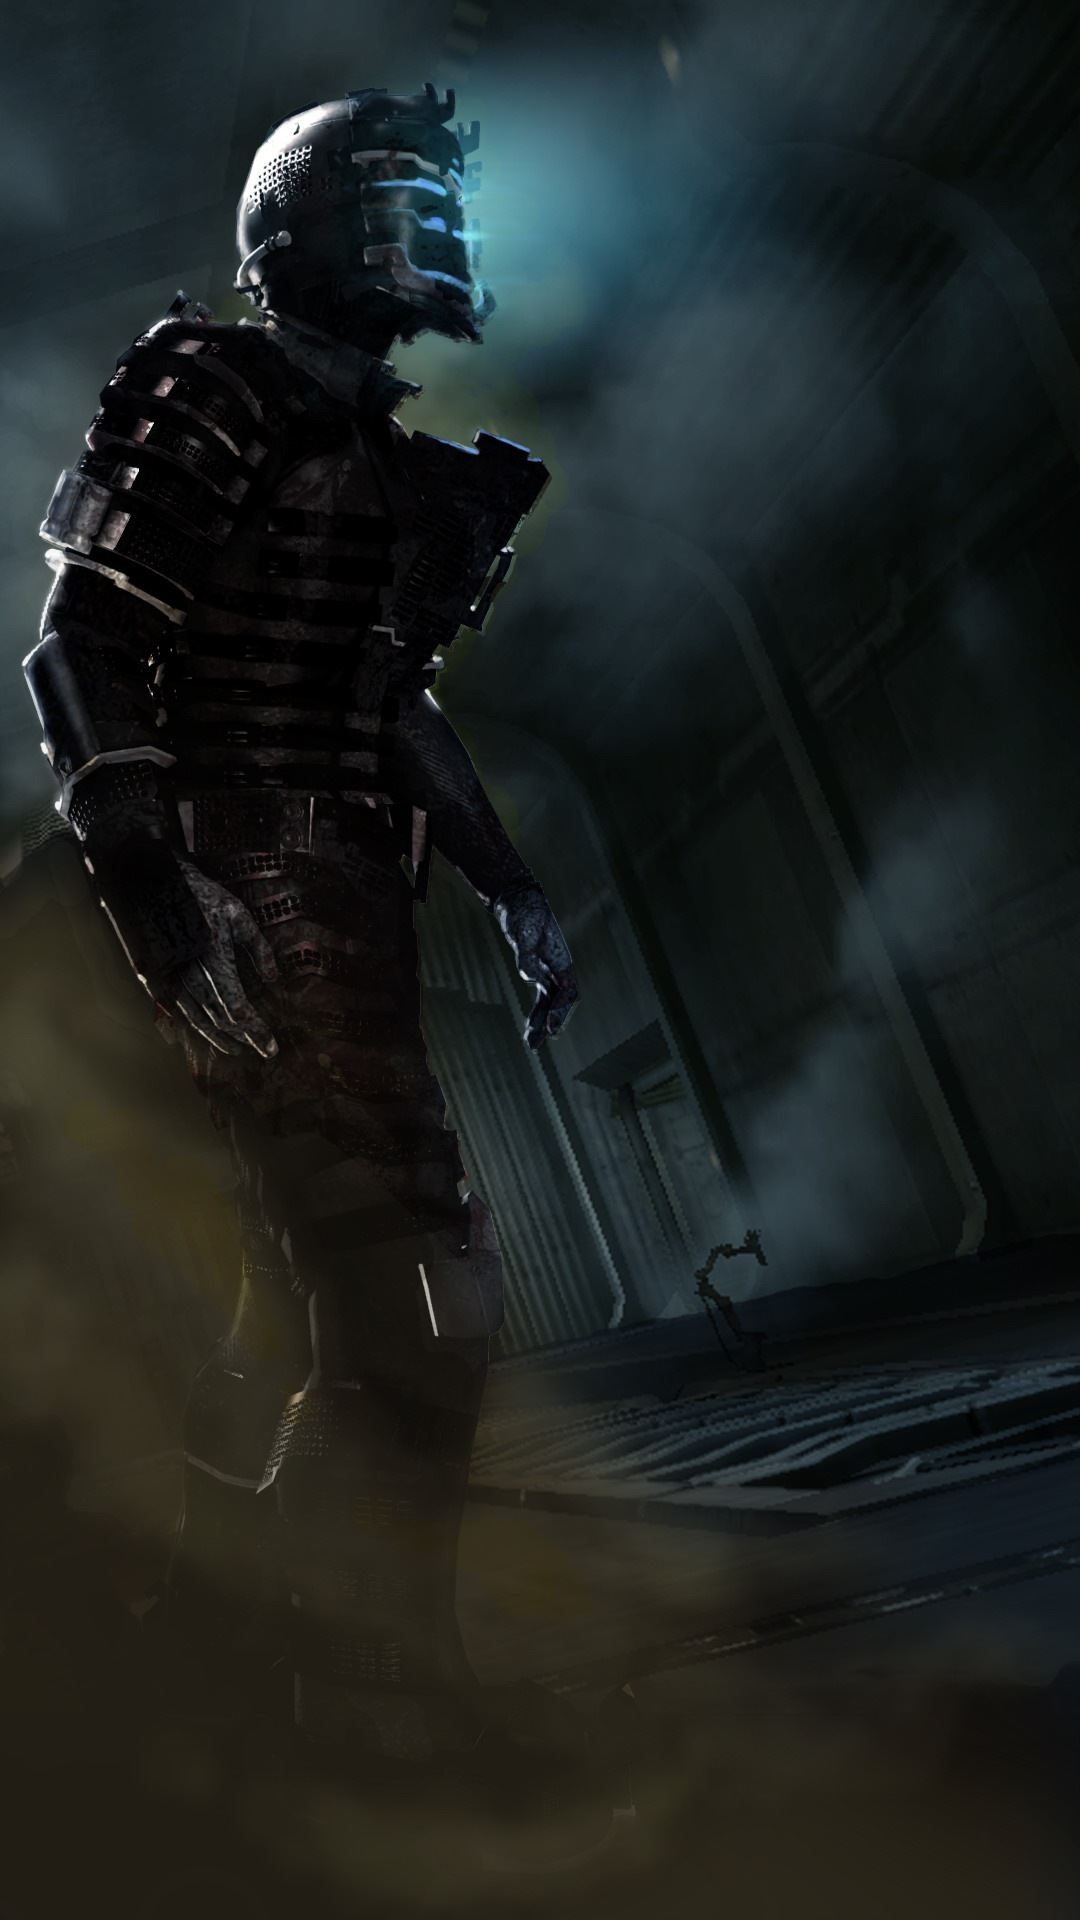 Dead-Space-Character-wallpaper-wp4605267